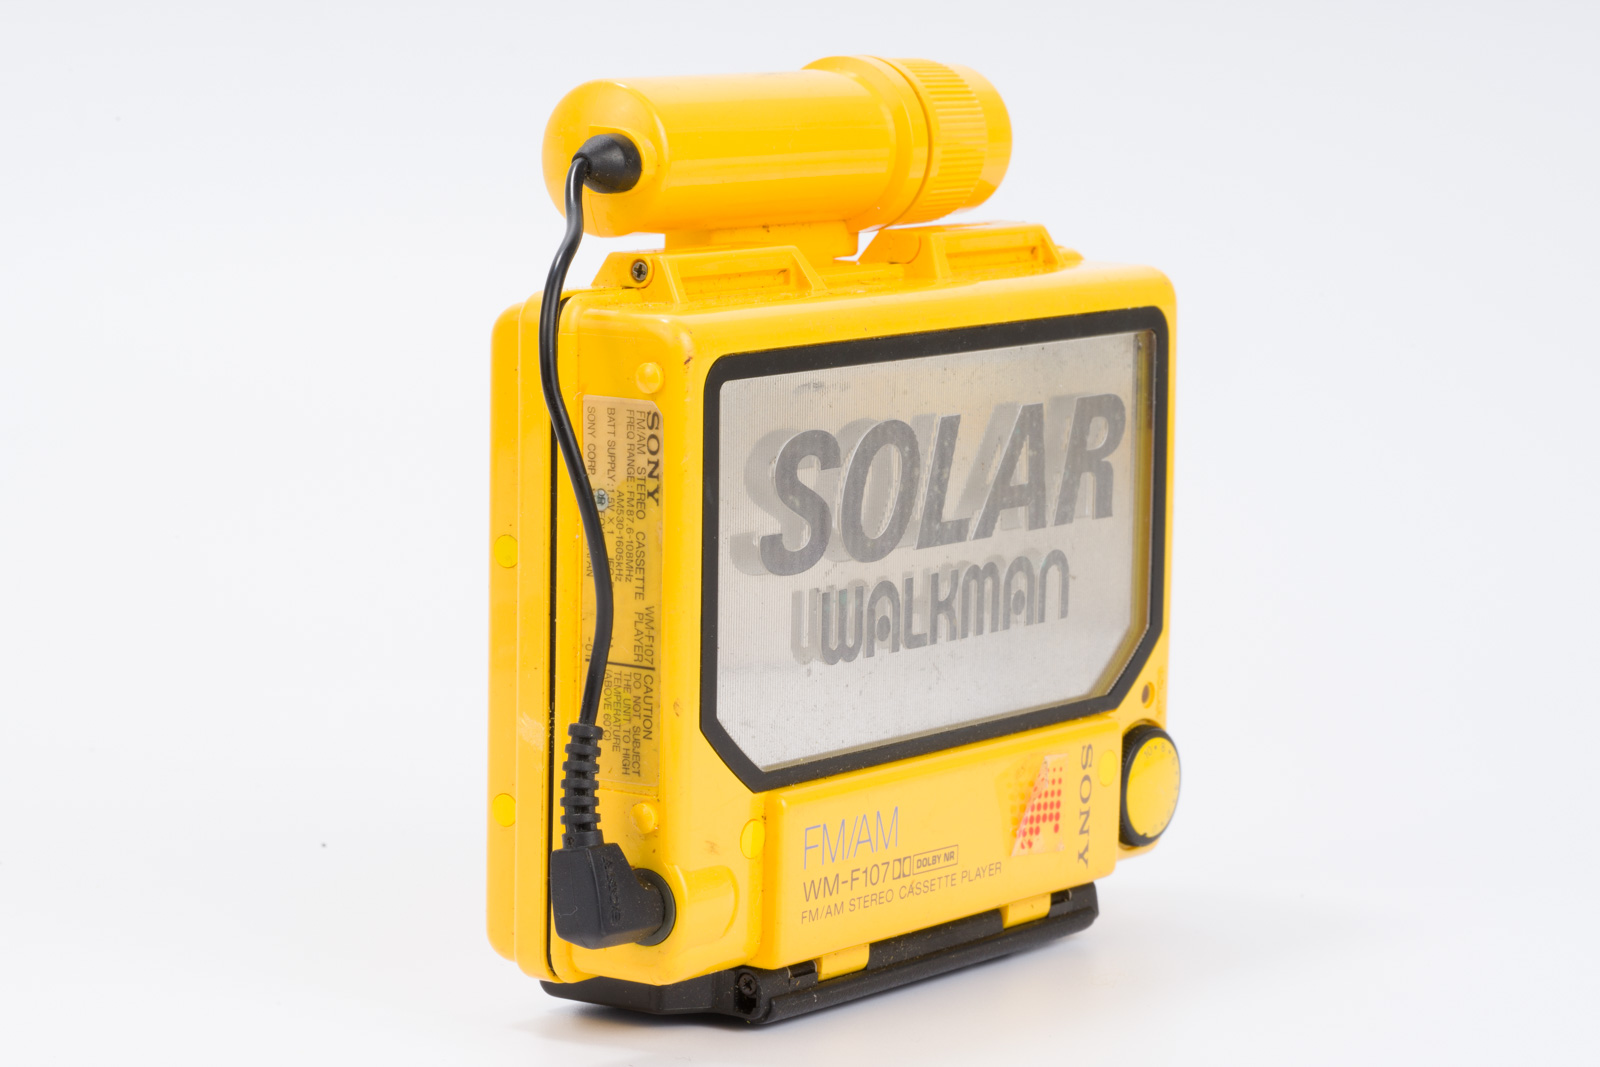 Sony Solar Walkman Radio